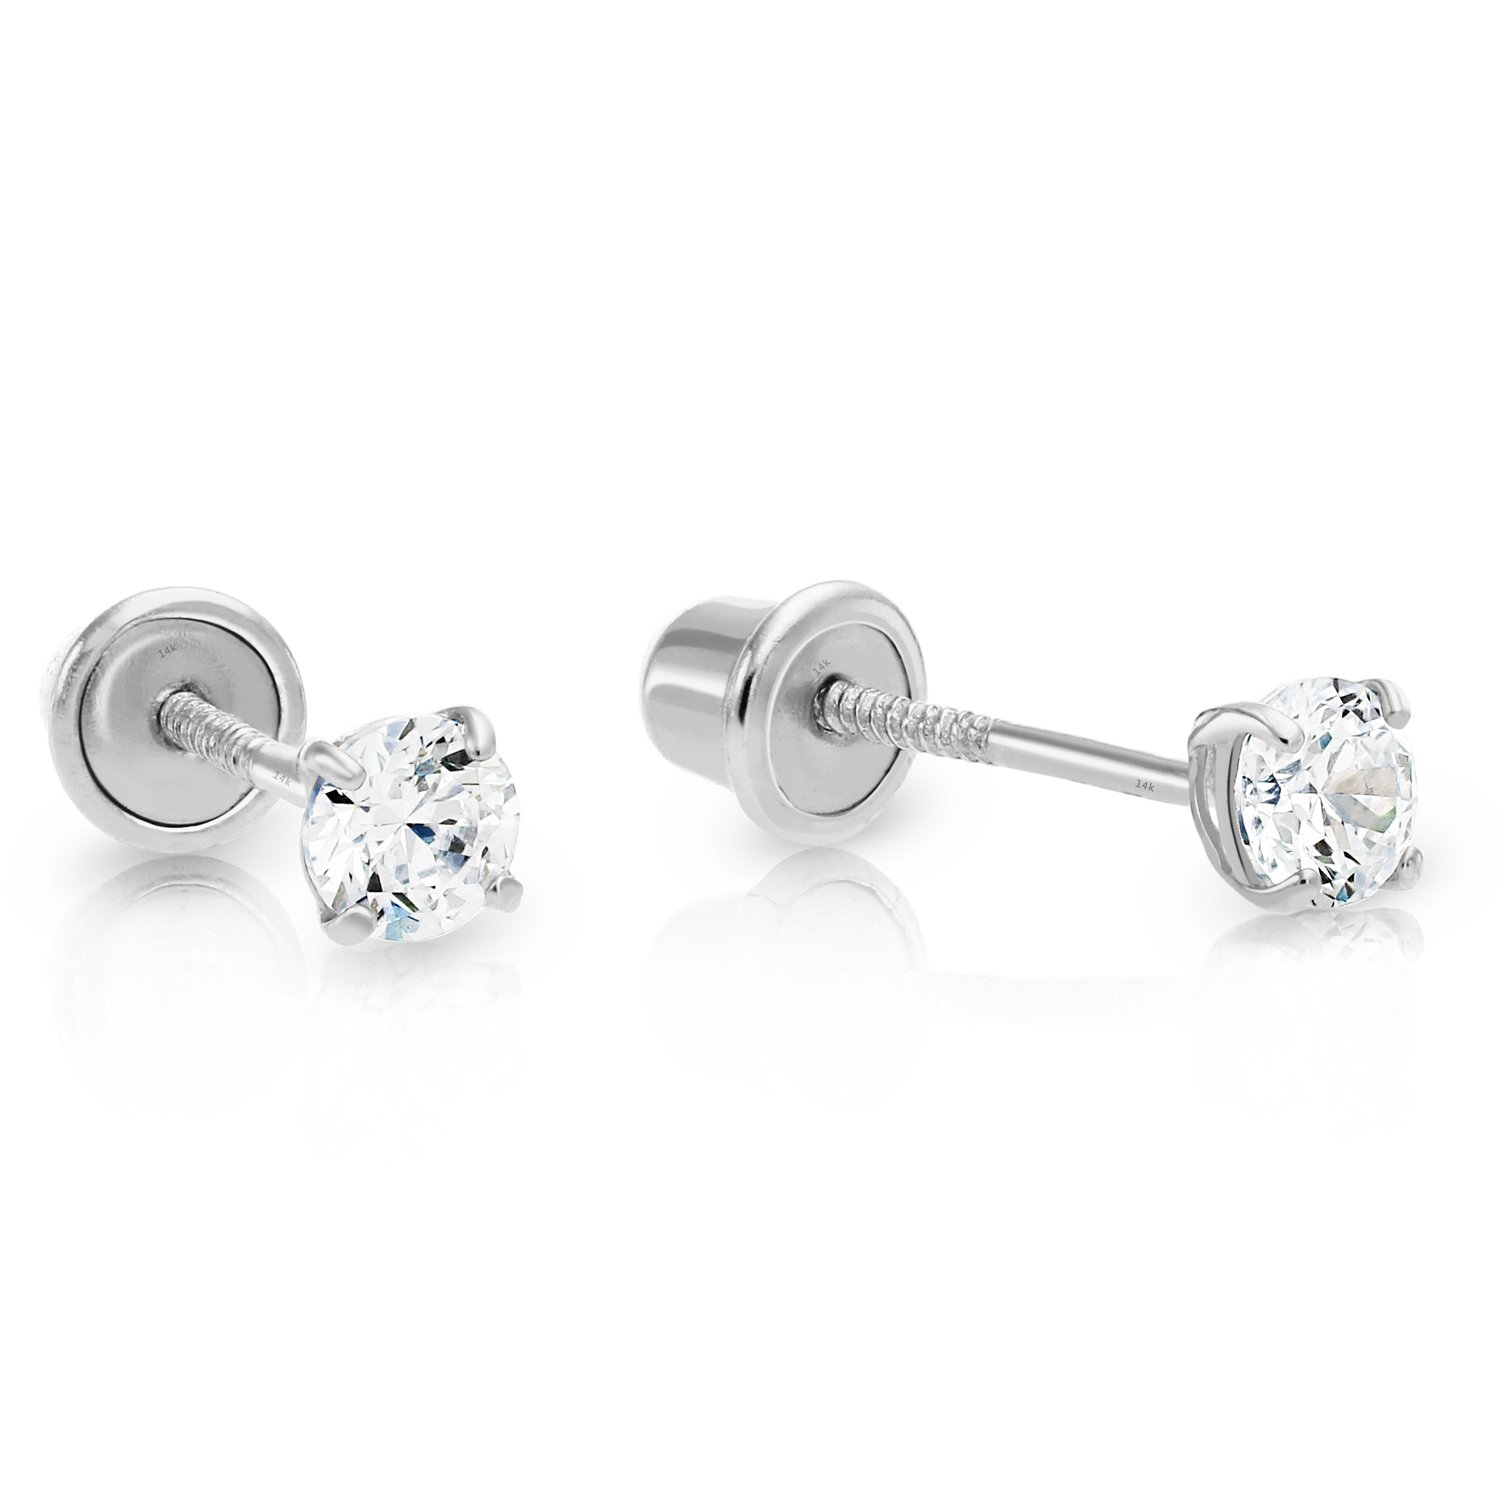 14k White Gold Solitaire Cubic Zirconia CZ Stud Earrings with Secure Screw-backs 14KW-RCZ2.5MM-SC